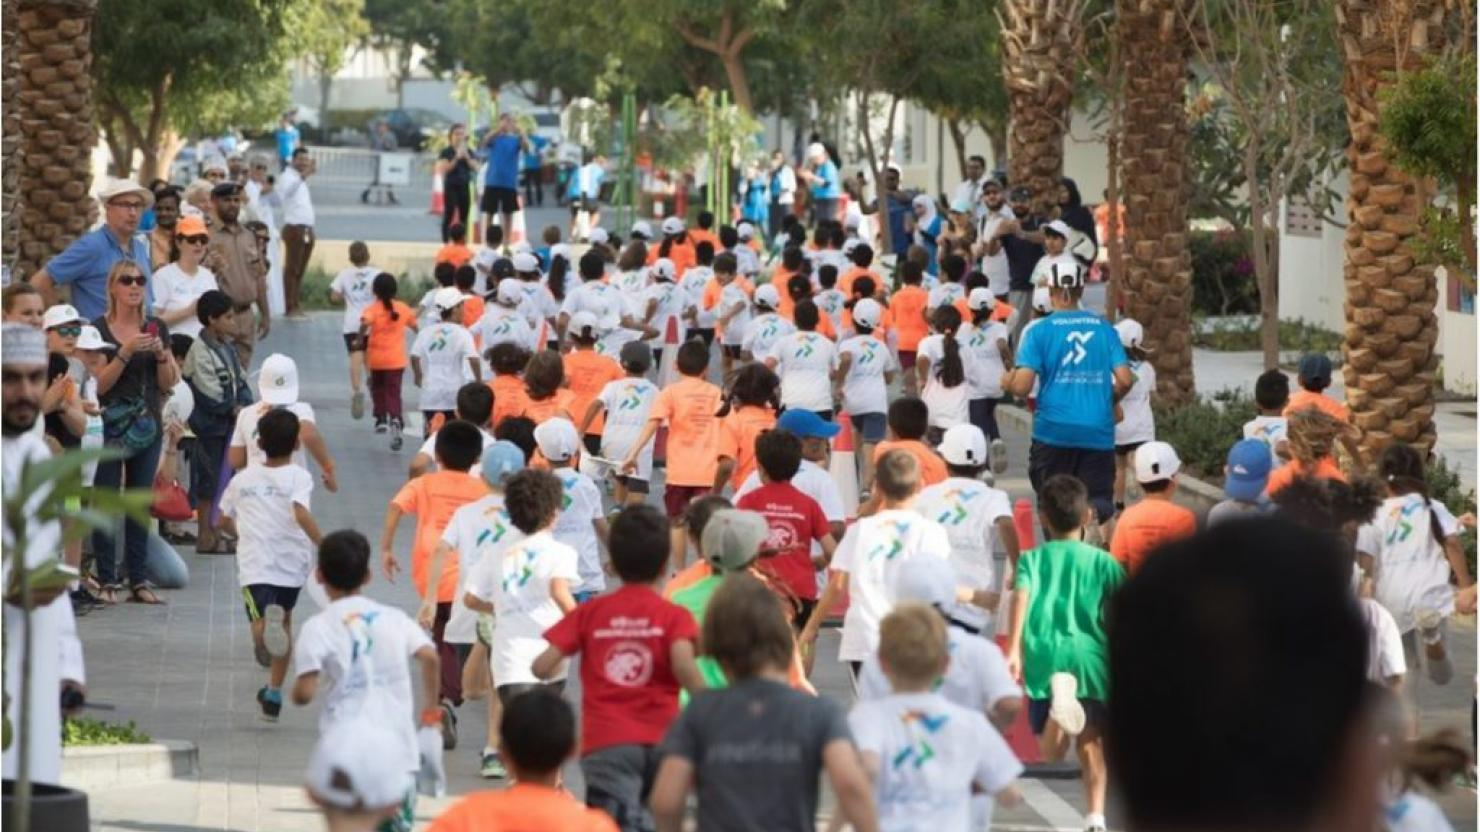 Brits help swell the numbers for record-breaking Muscat Marathon